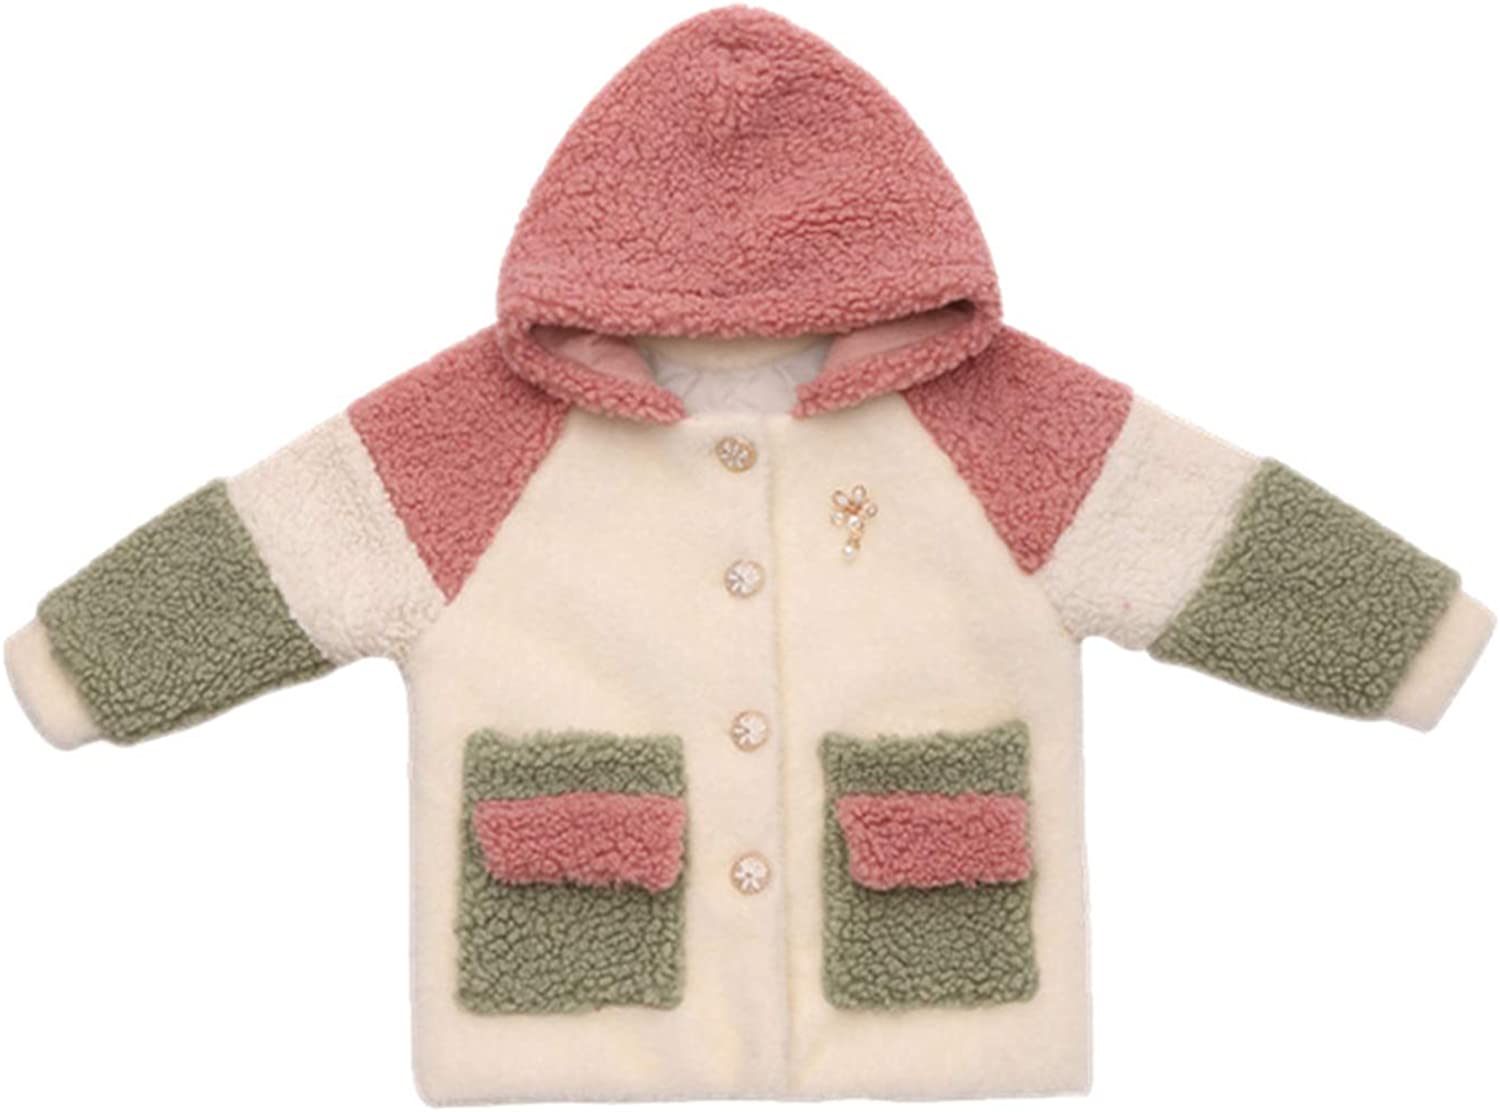 : FAT SHEEP Kids Wool Coat for Girl Winter Girl